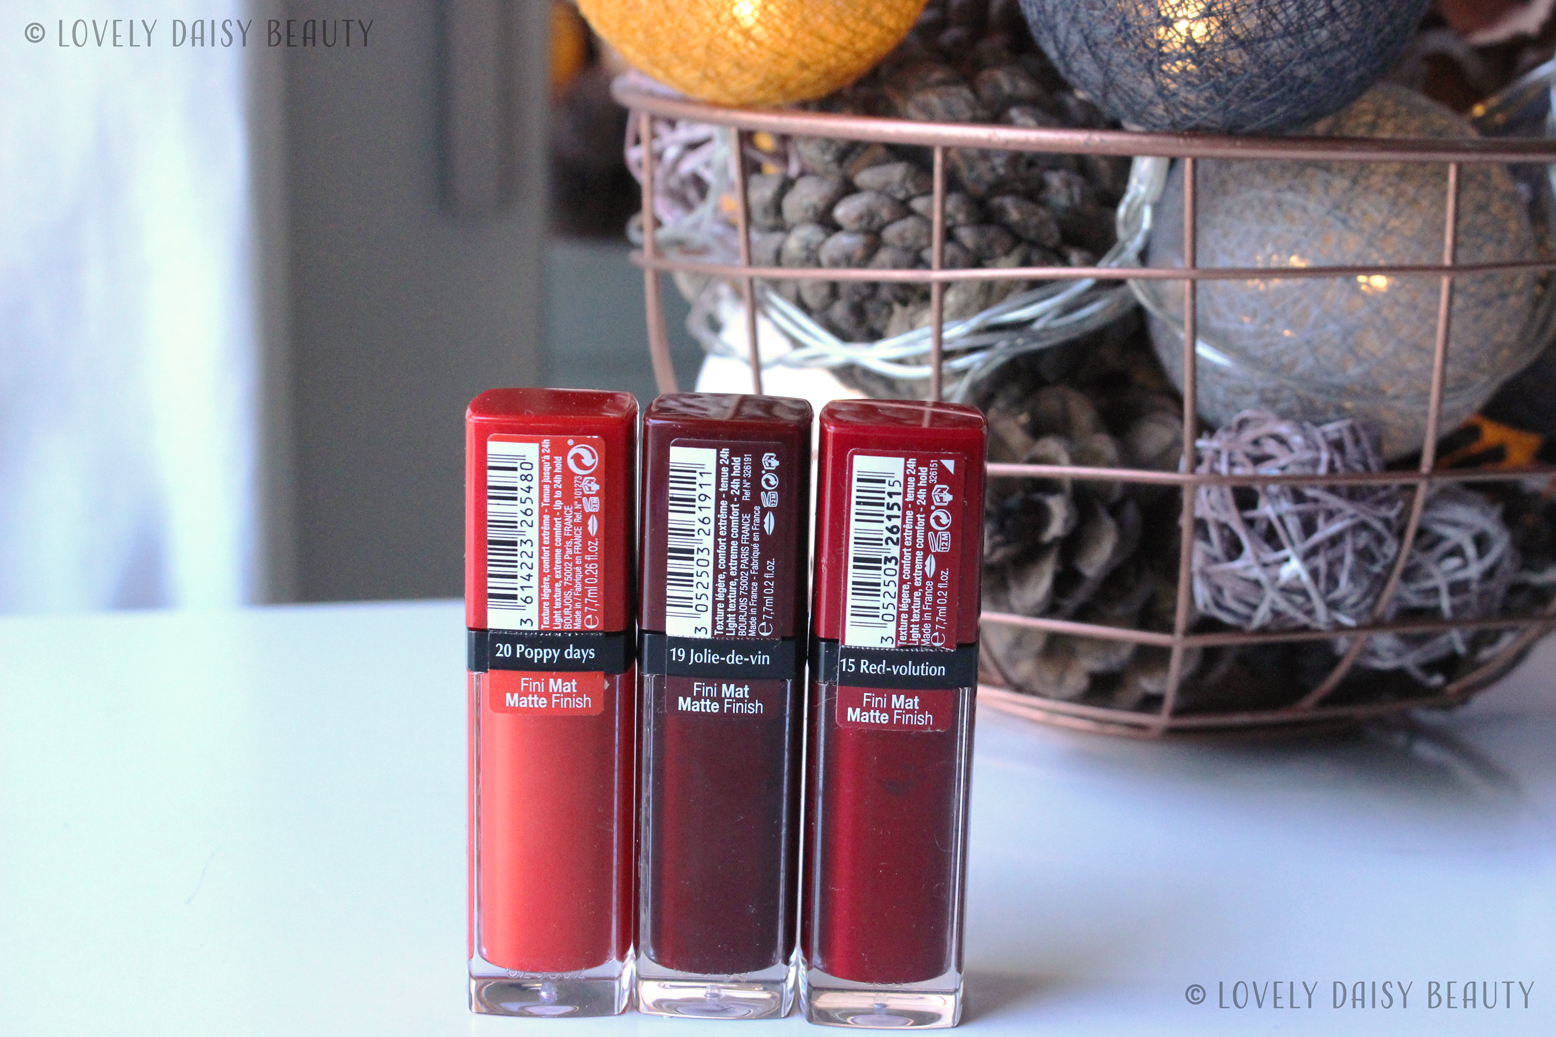 Rouge-Edition-Velvet-poppy-days-redvolution-jolie-de-vin2